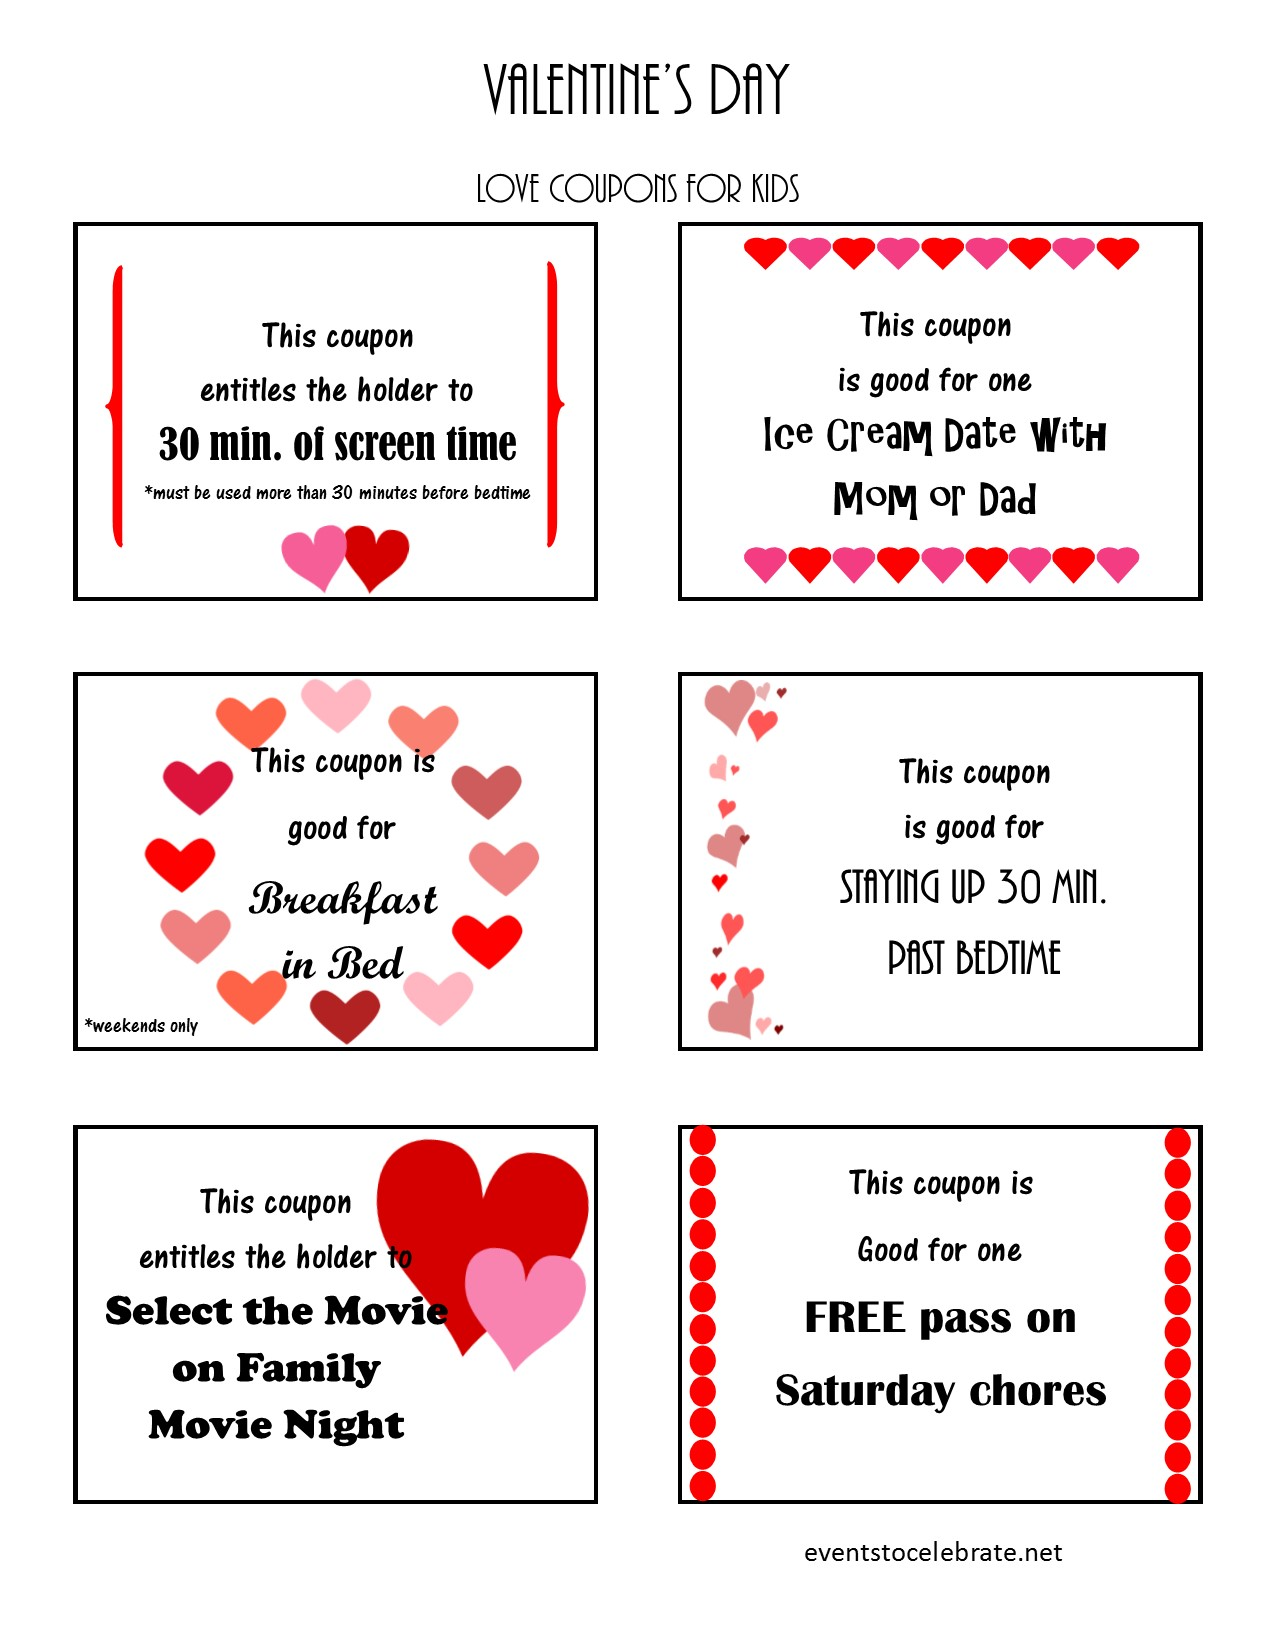 Valentine S Day Love Coupons